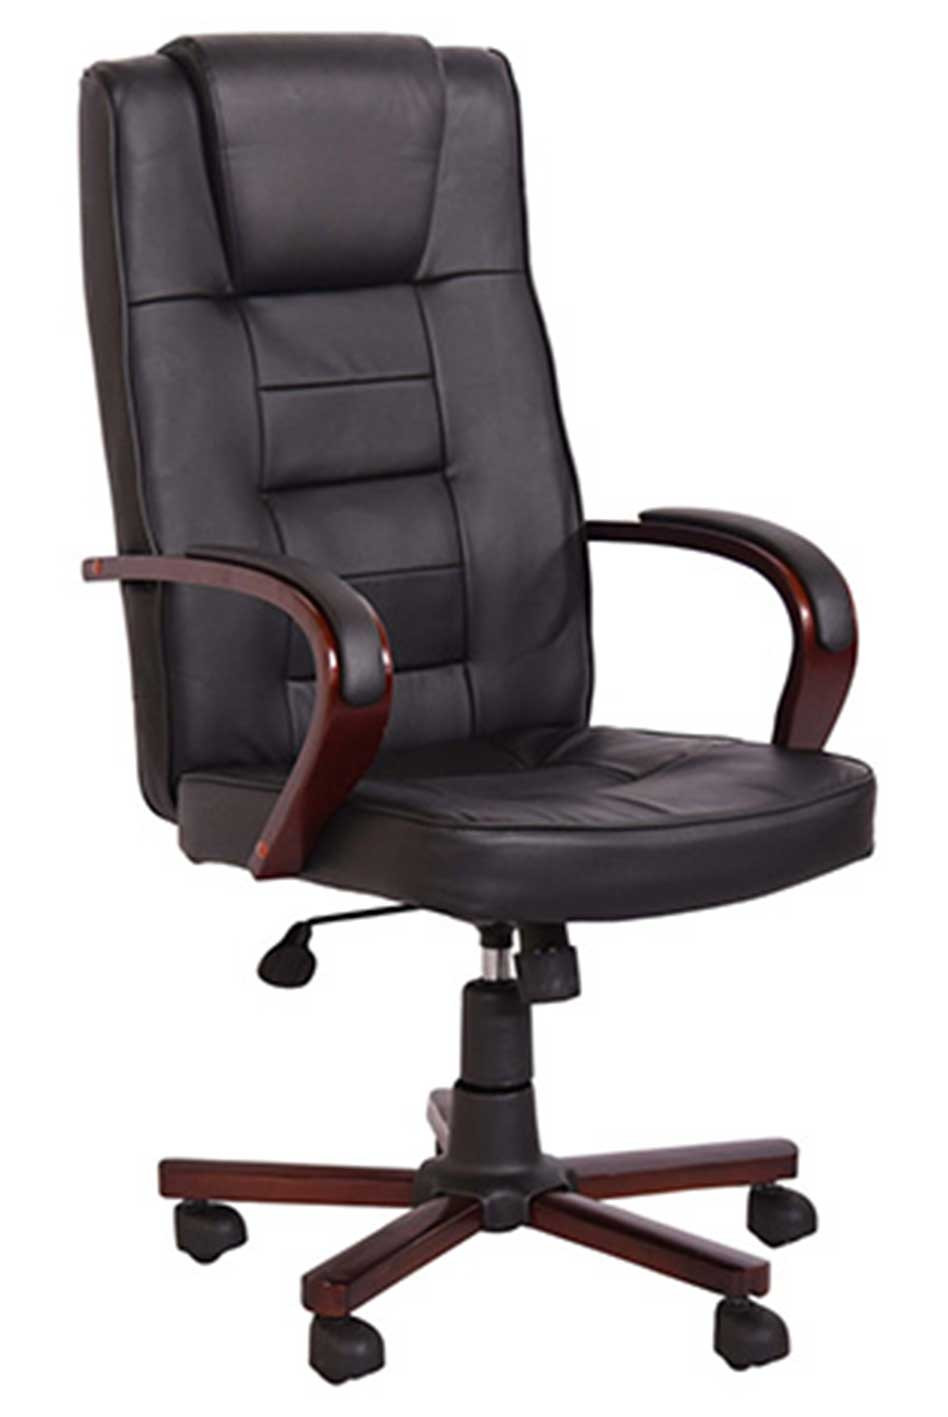 Best ideas about Office Chair Sale . Save or Pin DEA016 fice Chair fice Chairs For Sale Now.